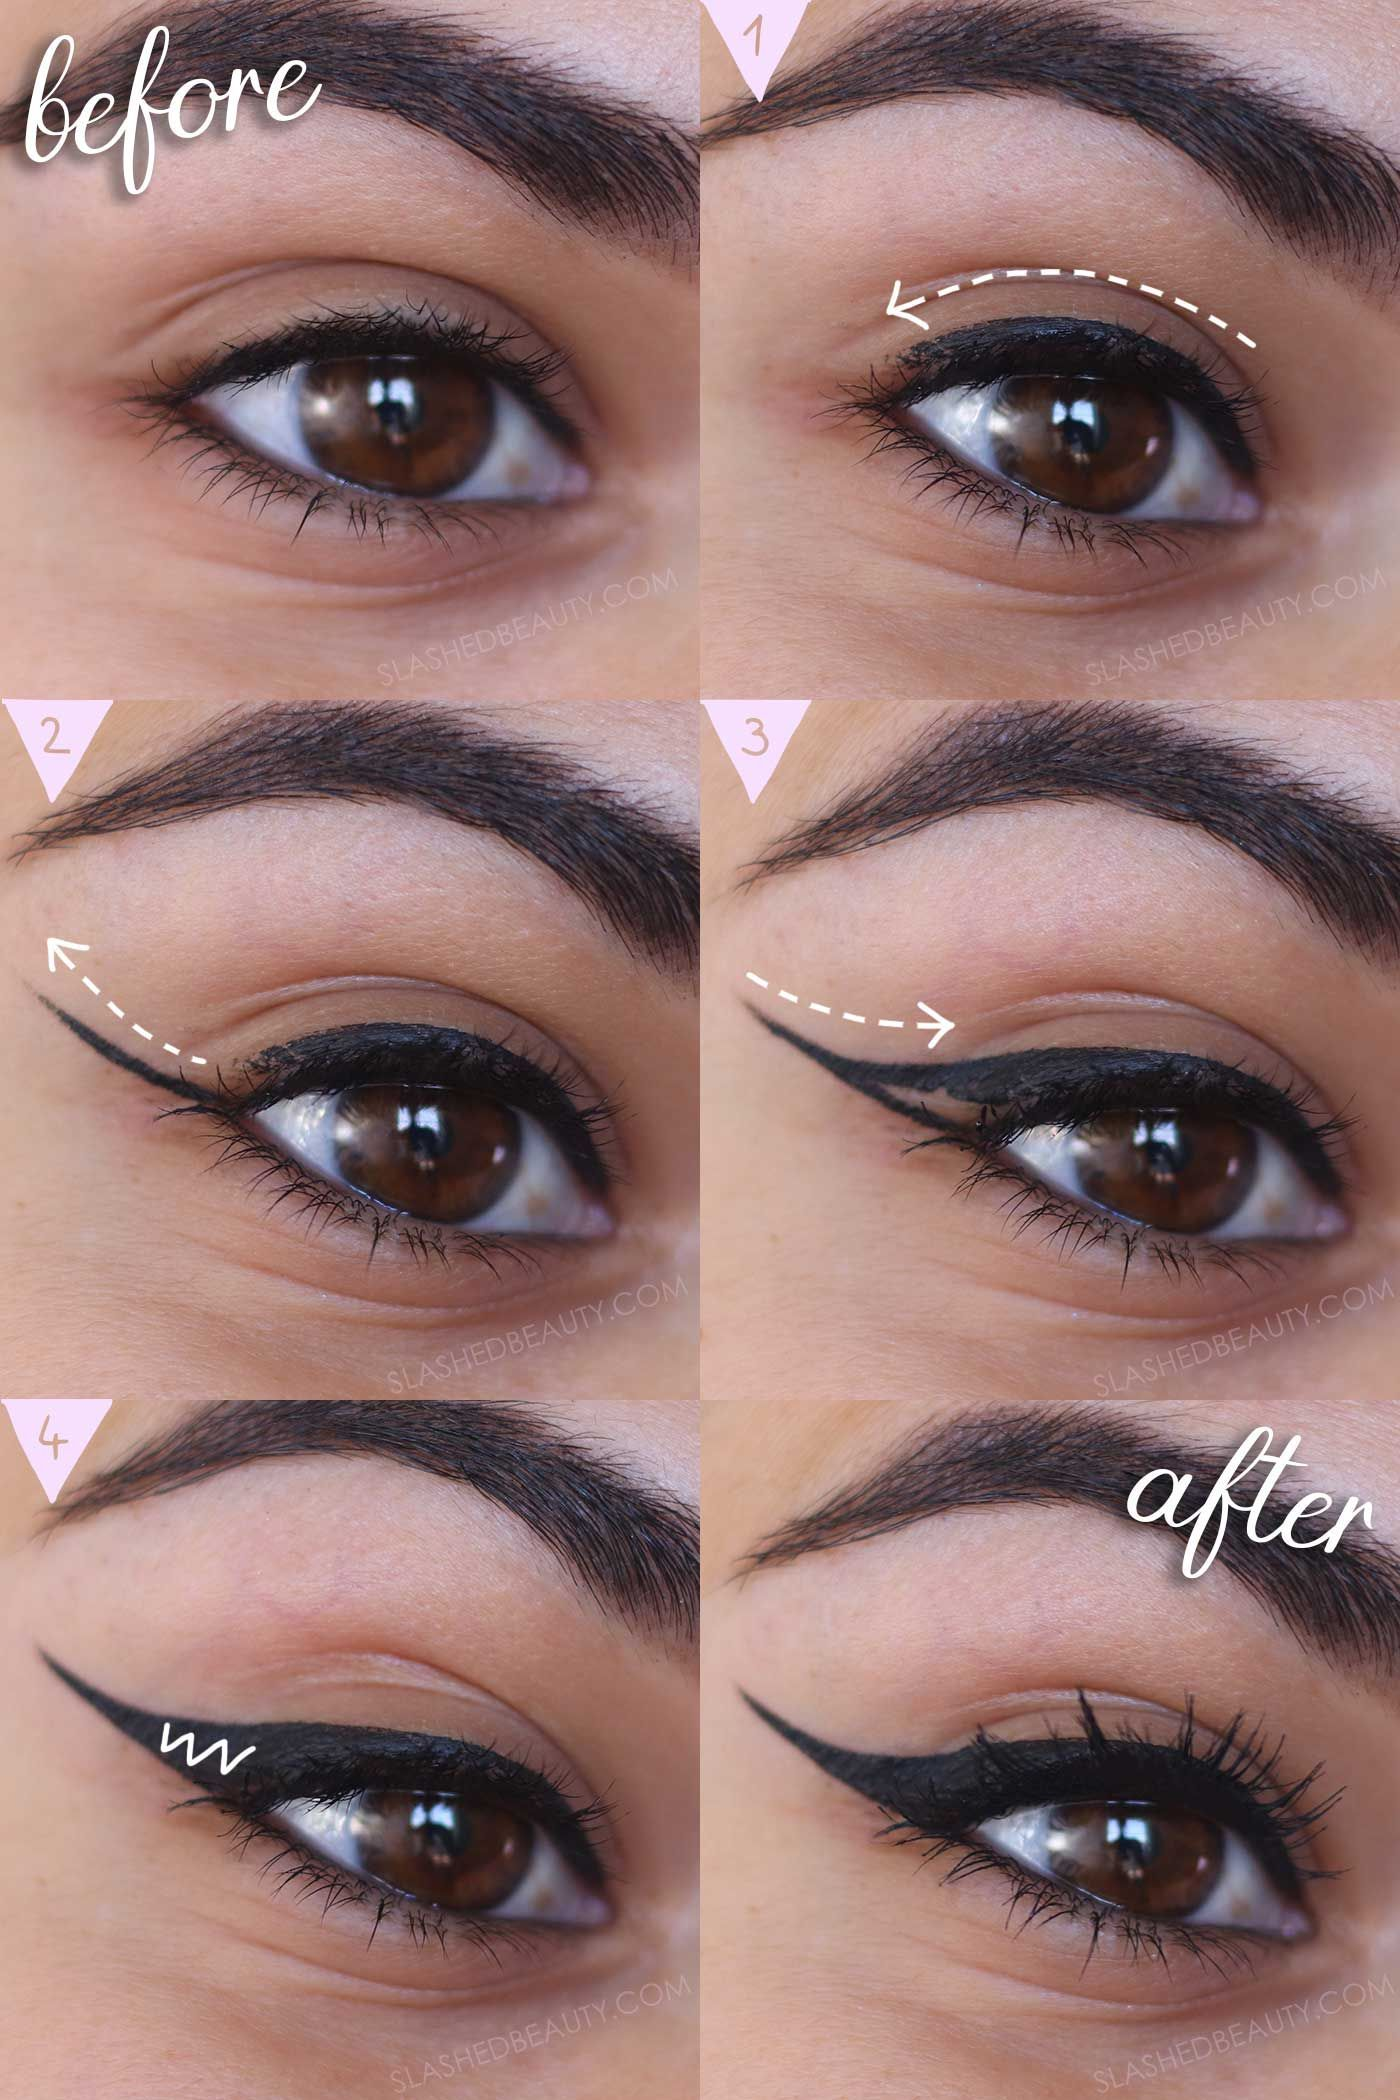 Eyeliner Guide & Winged Eyeliner Tutorial for Beginners in